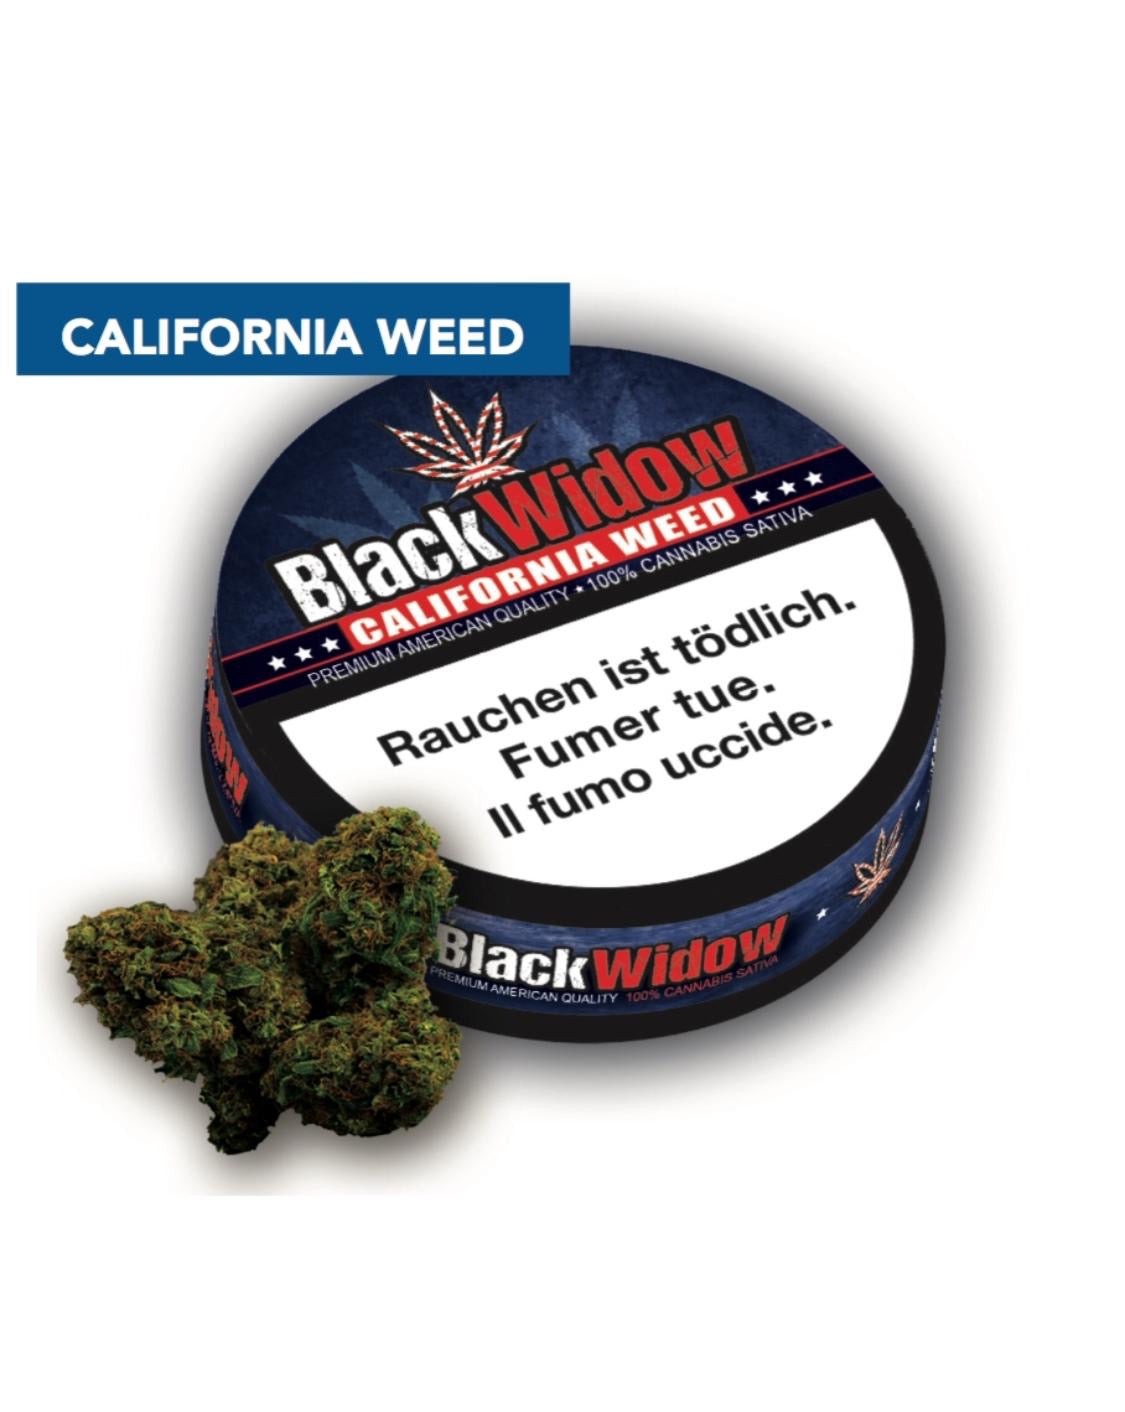 Black Widow CBD - California Weed 2g